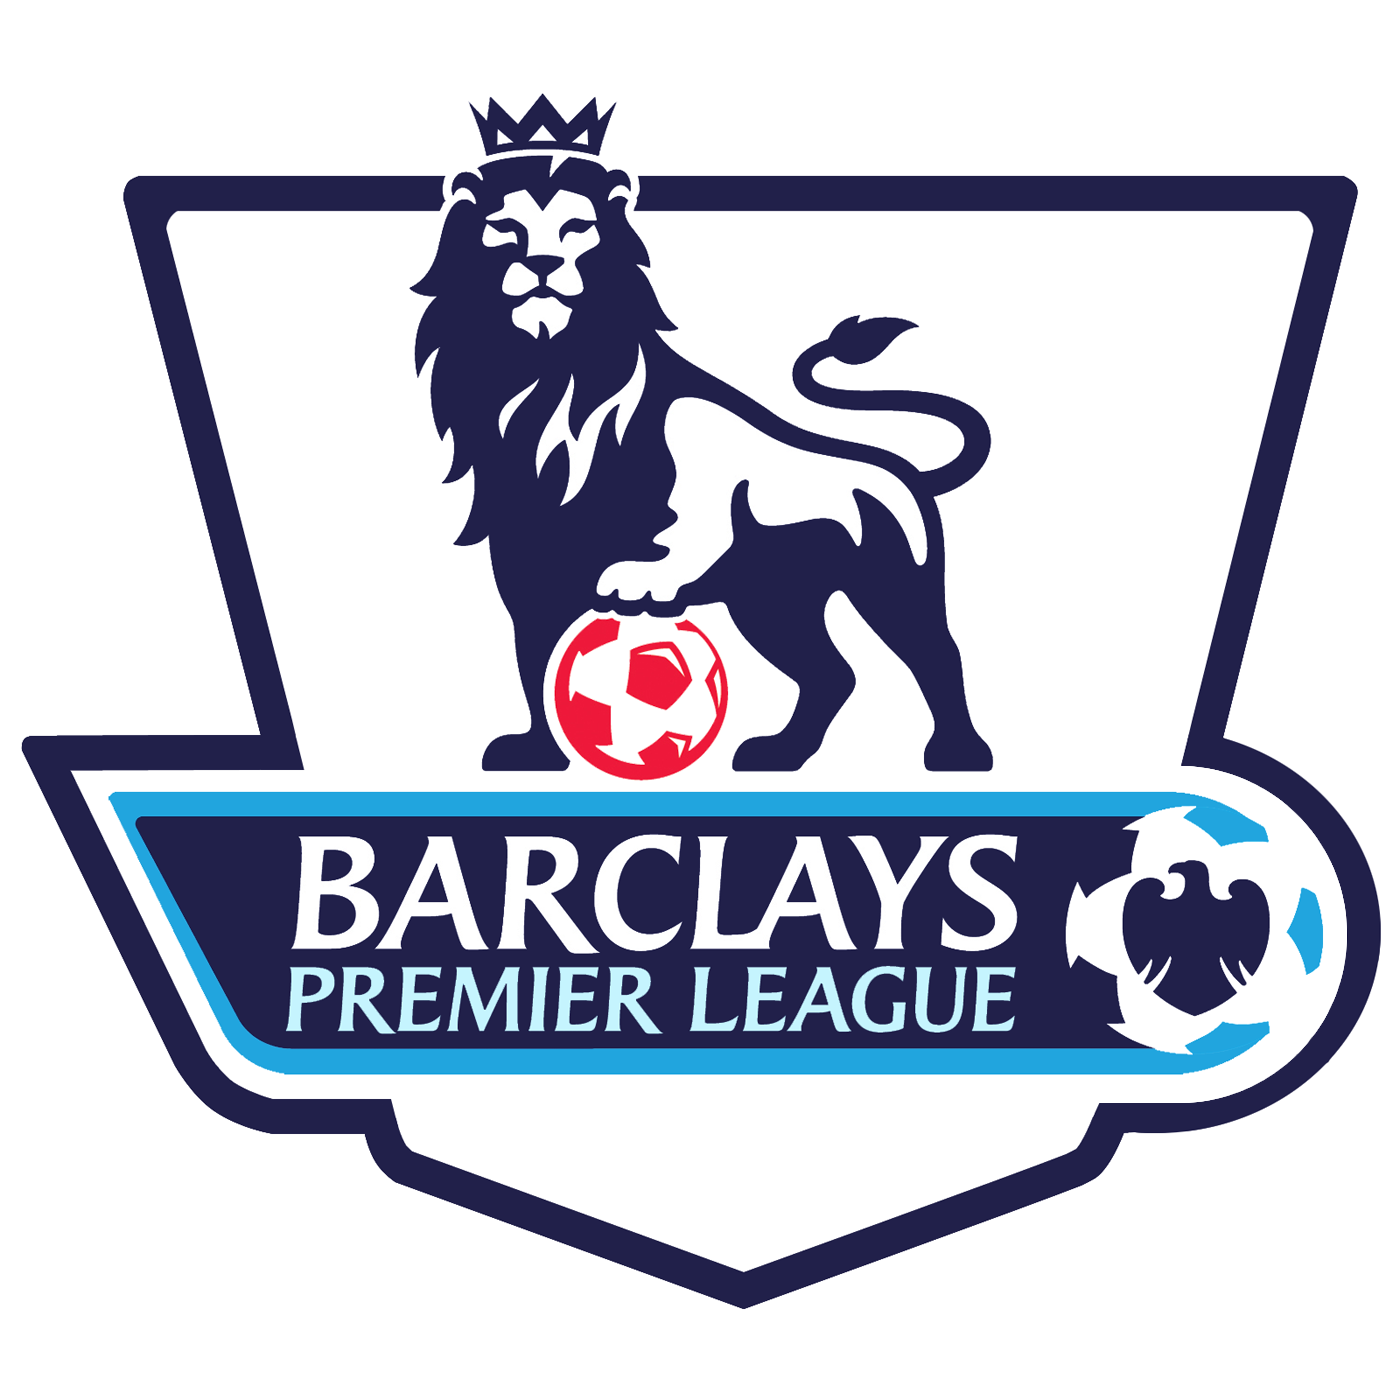 a016df7f47d English Premier League 2014-15 fixtures - Opening day and top clubsu0027  fixtures - English